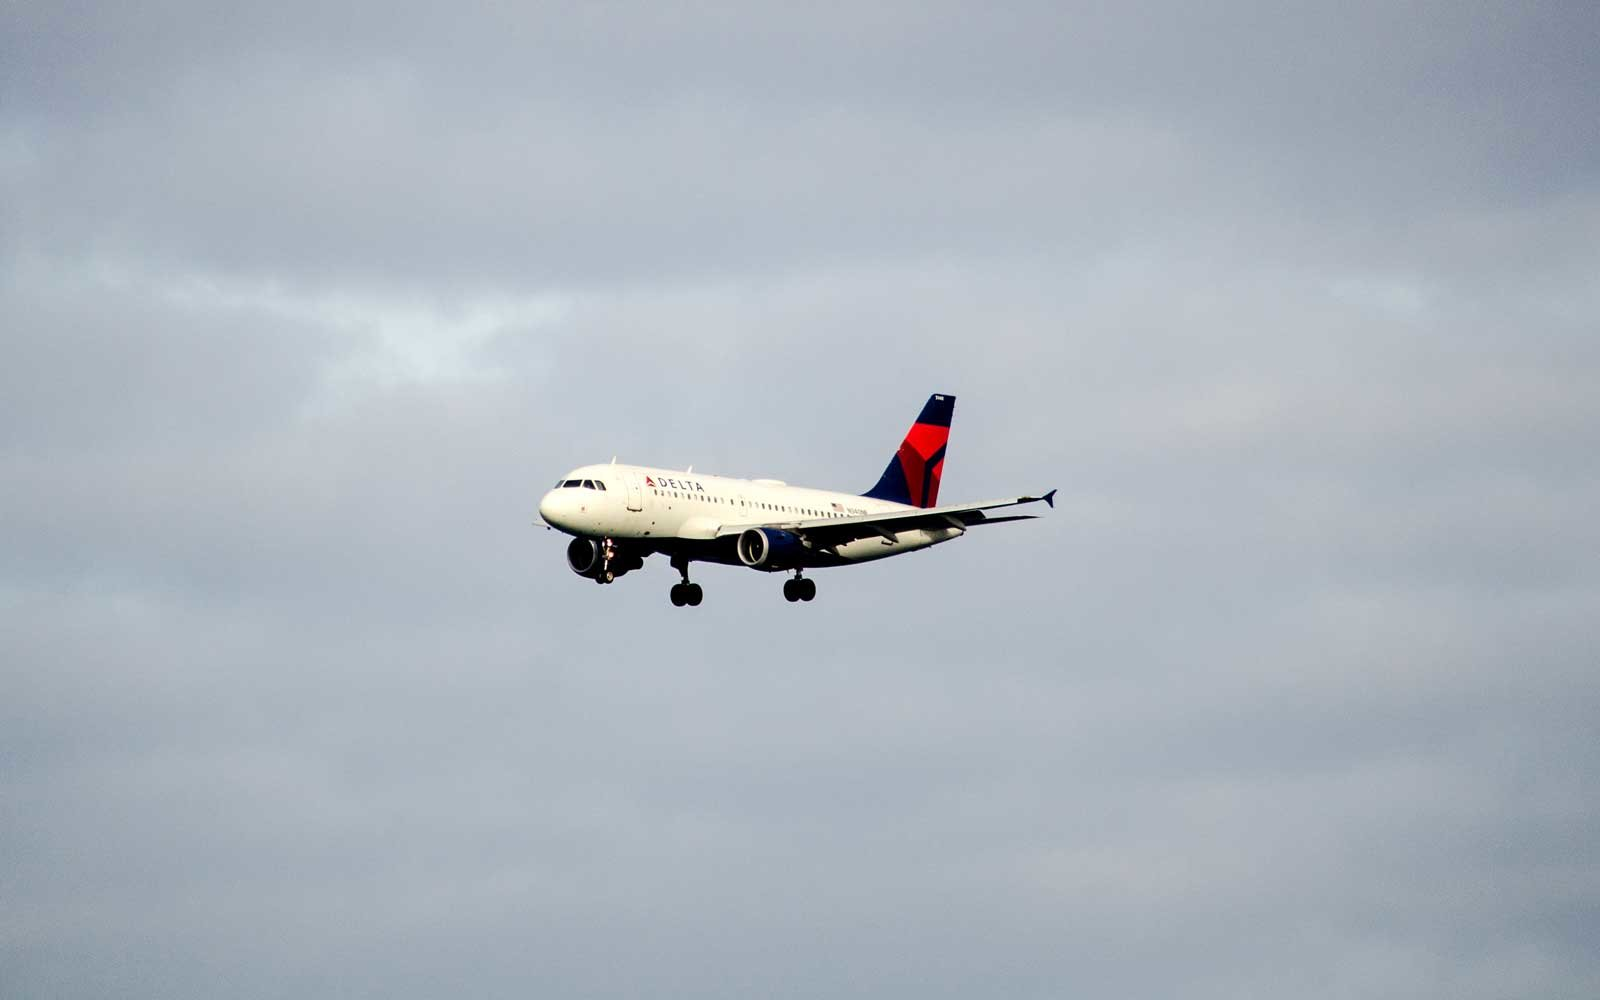 Delta Is Offsetting the Carbon Emissions From 300,000 Passengers for Earth Day